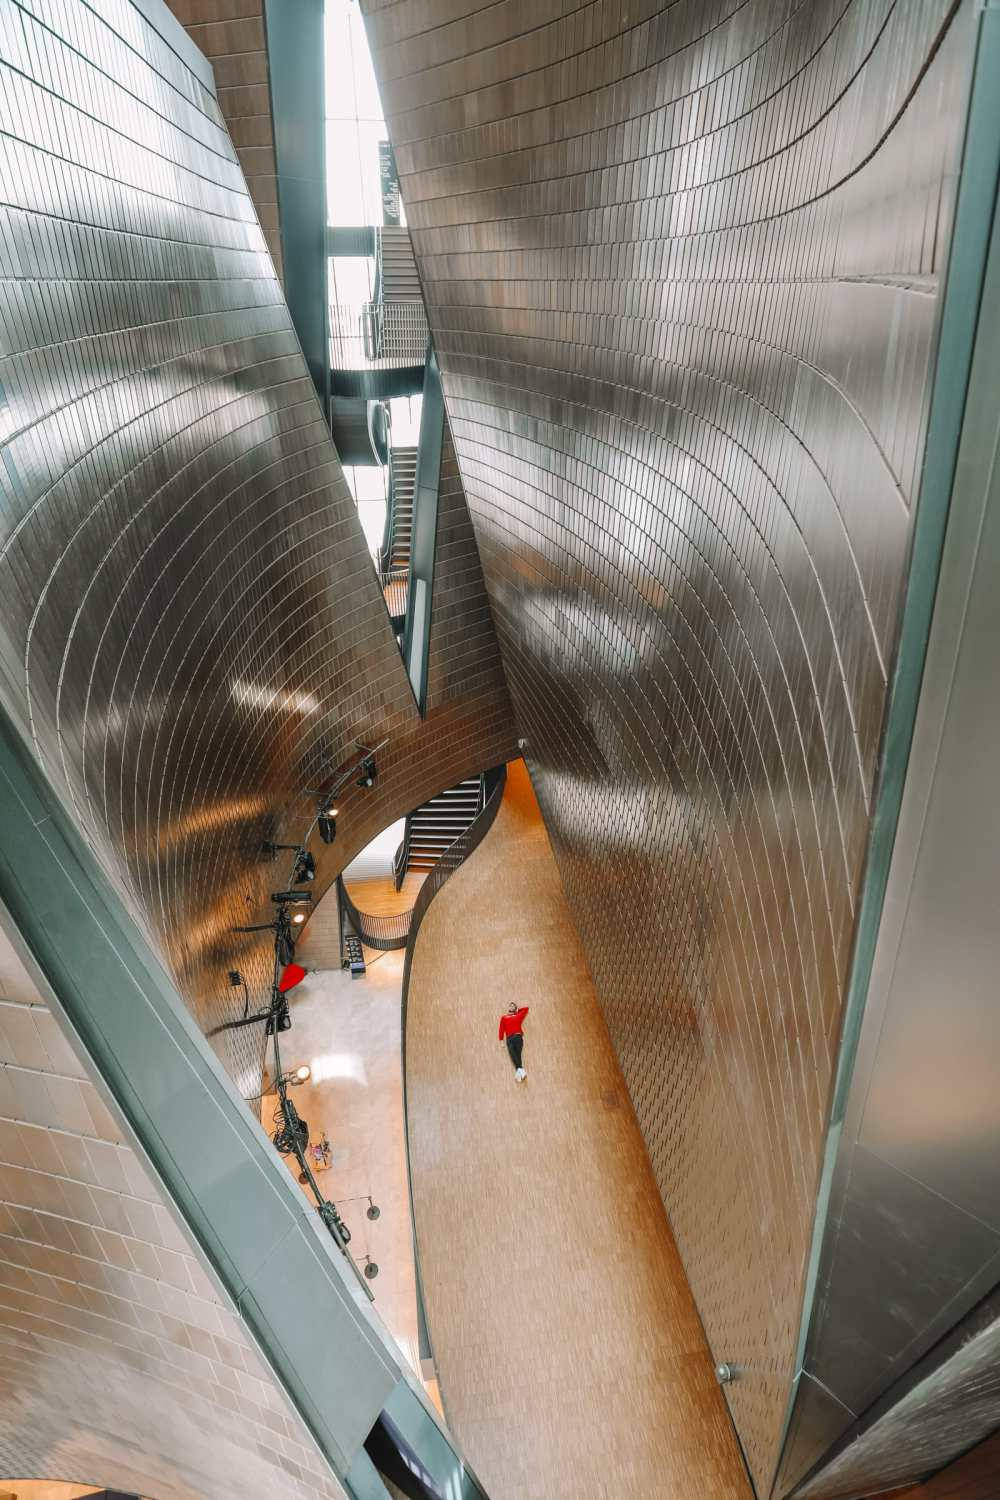 Finding Calgary's Architectural Masterpieces - Studio Bell And The Central Library (32)